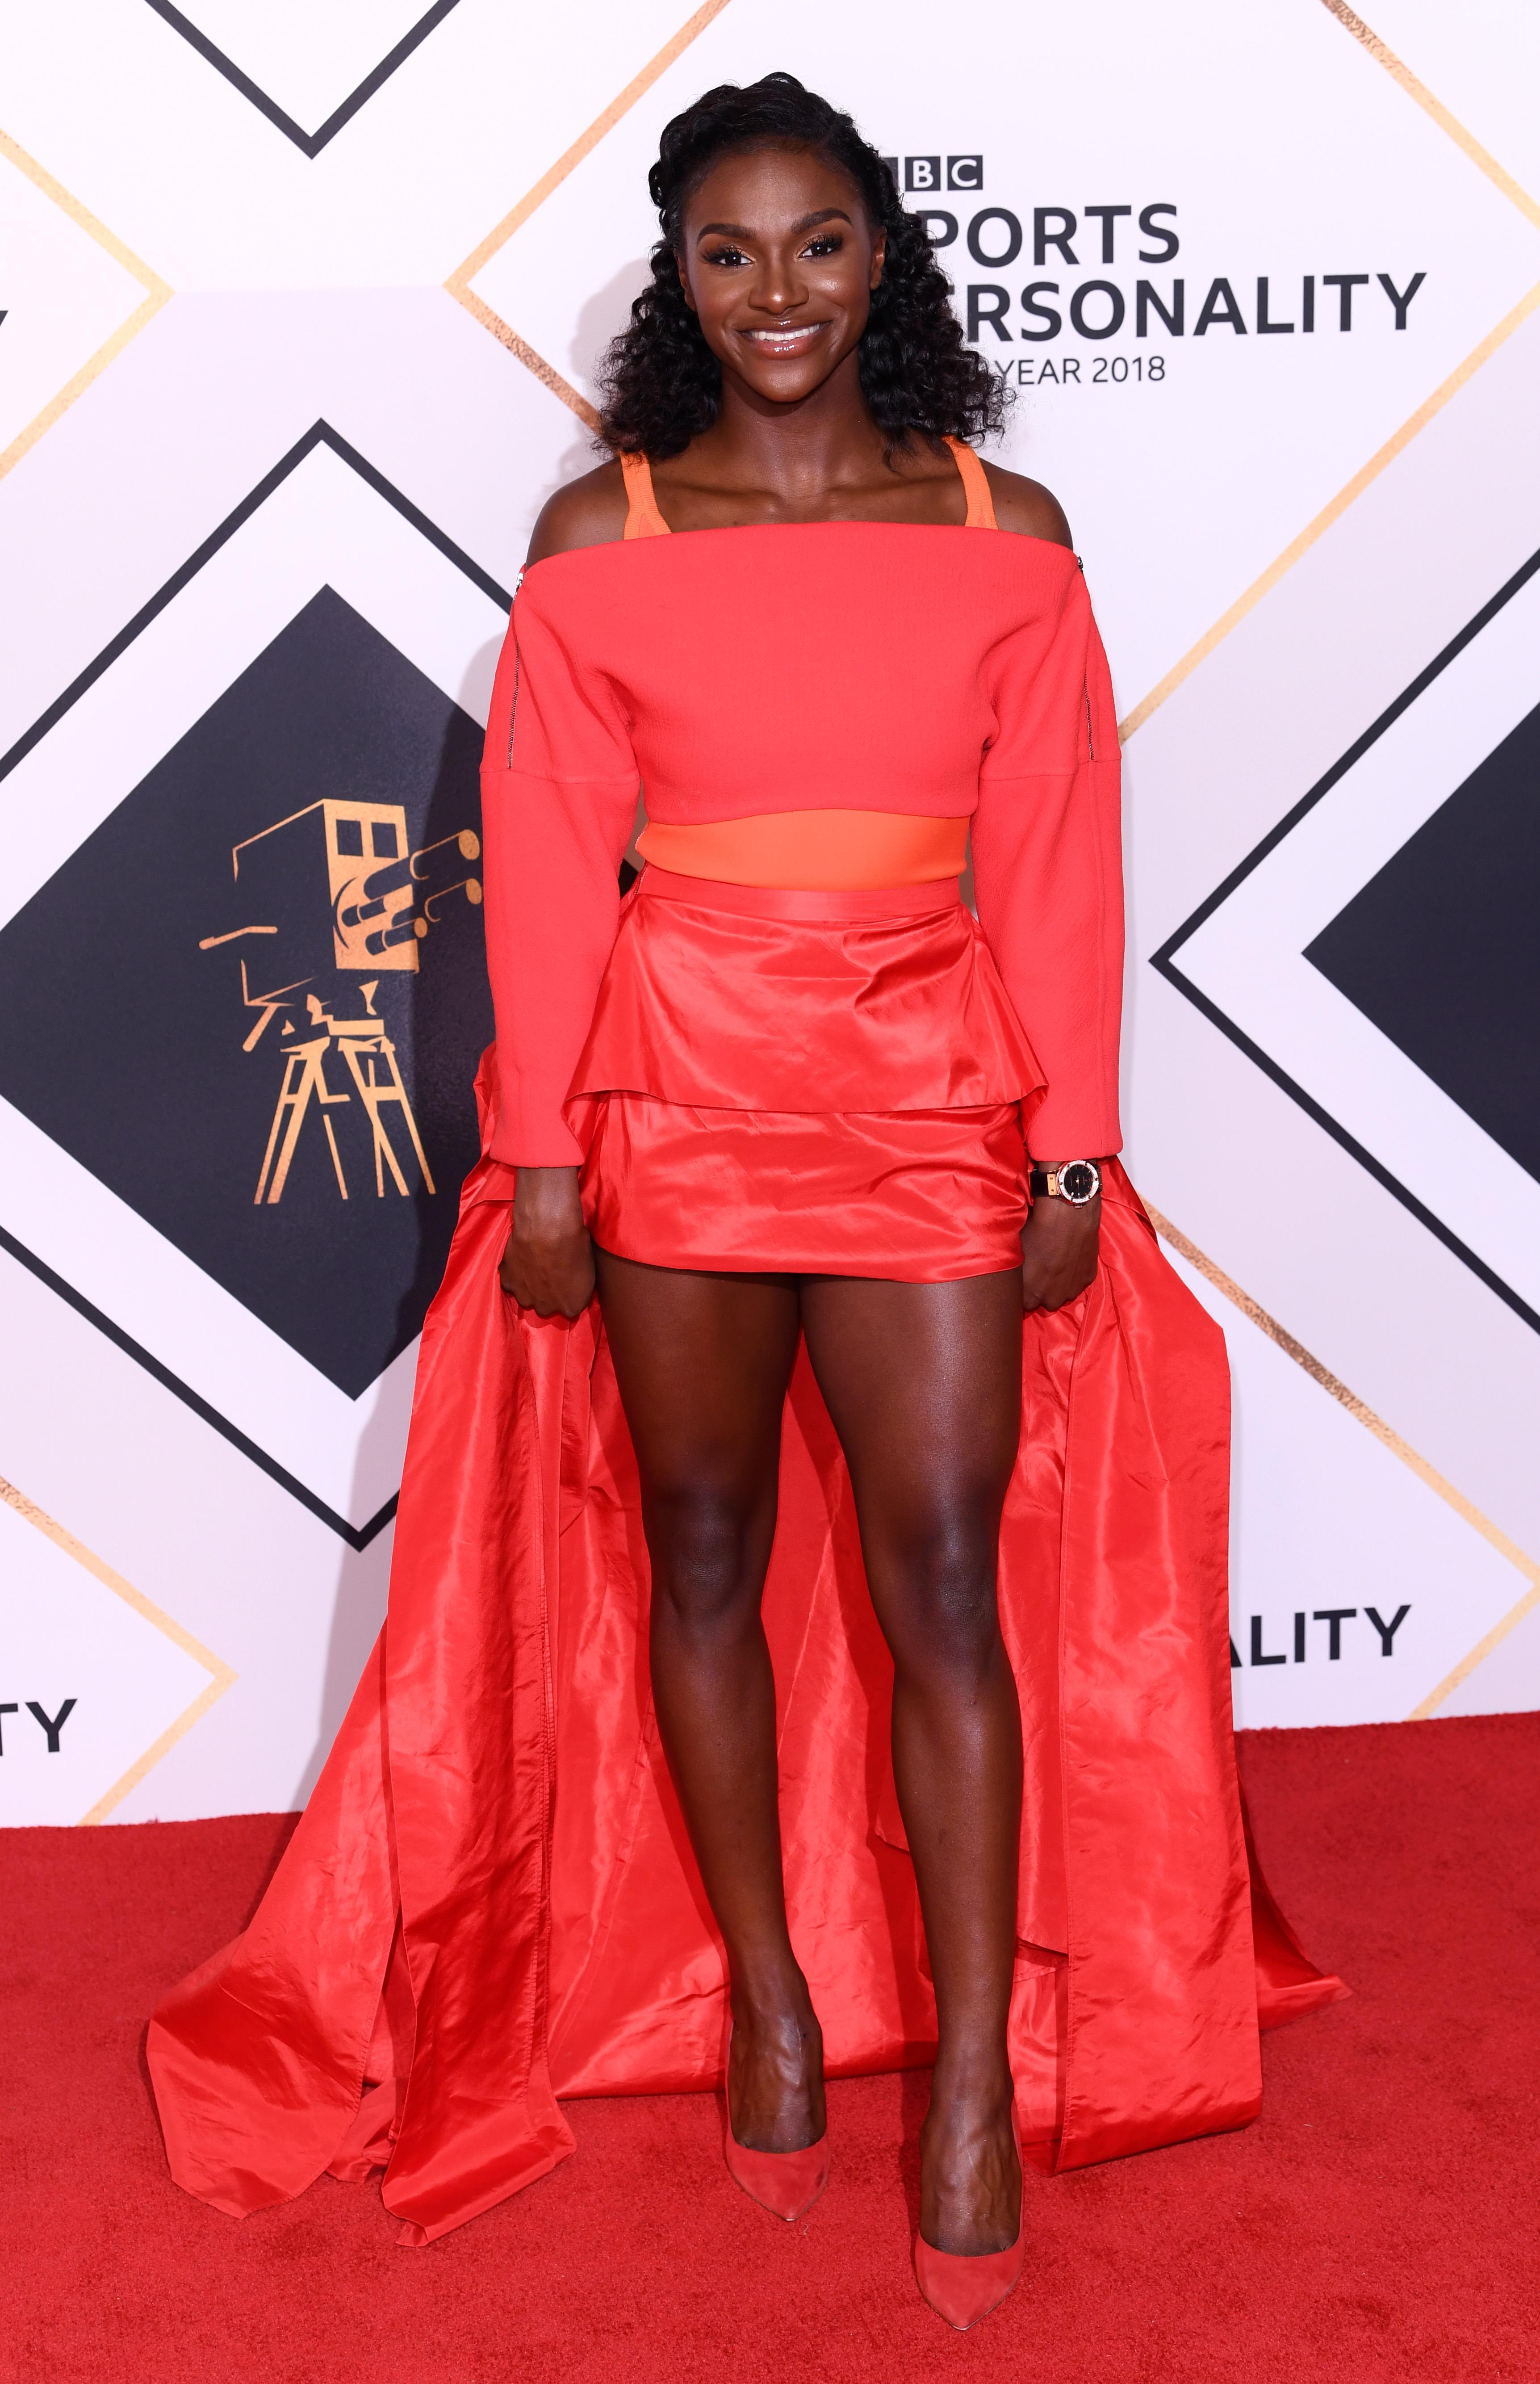 Dina Asher-Smith is on the red carpet and could be in the running for the Sports Personality of the Year award